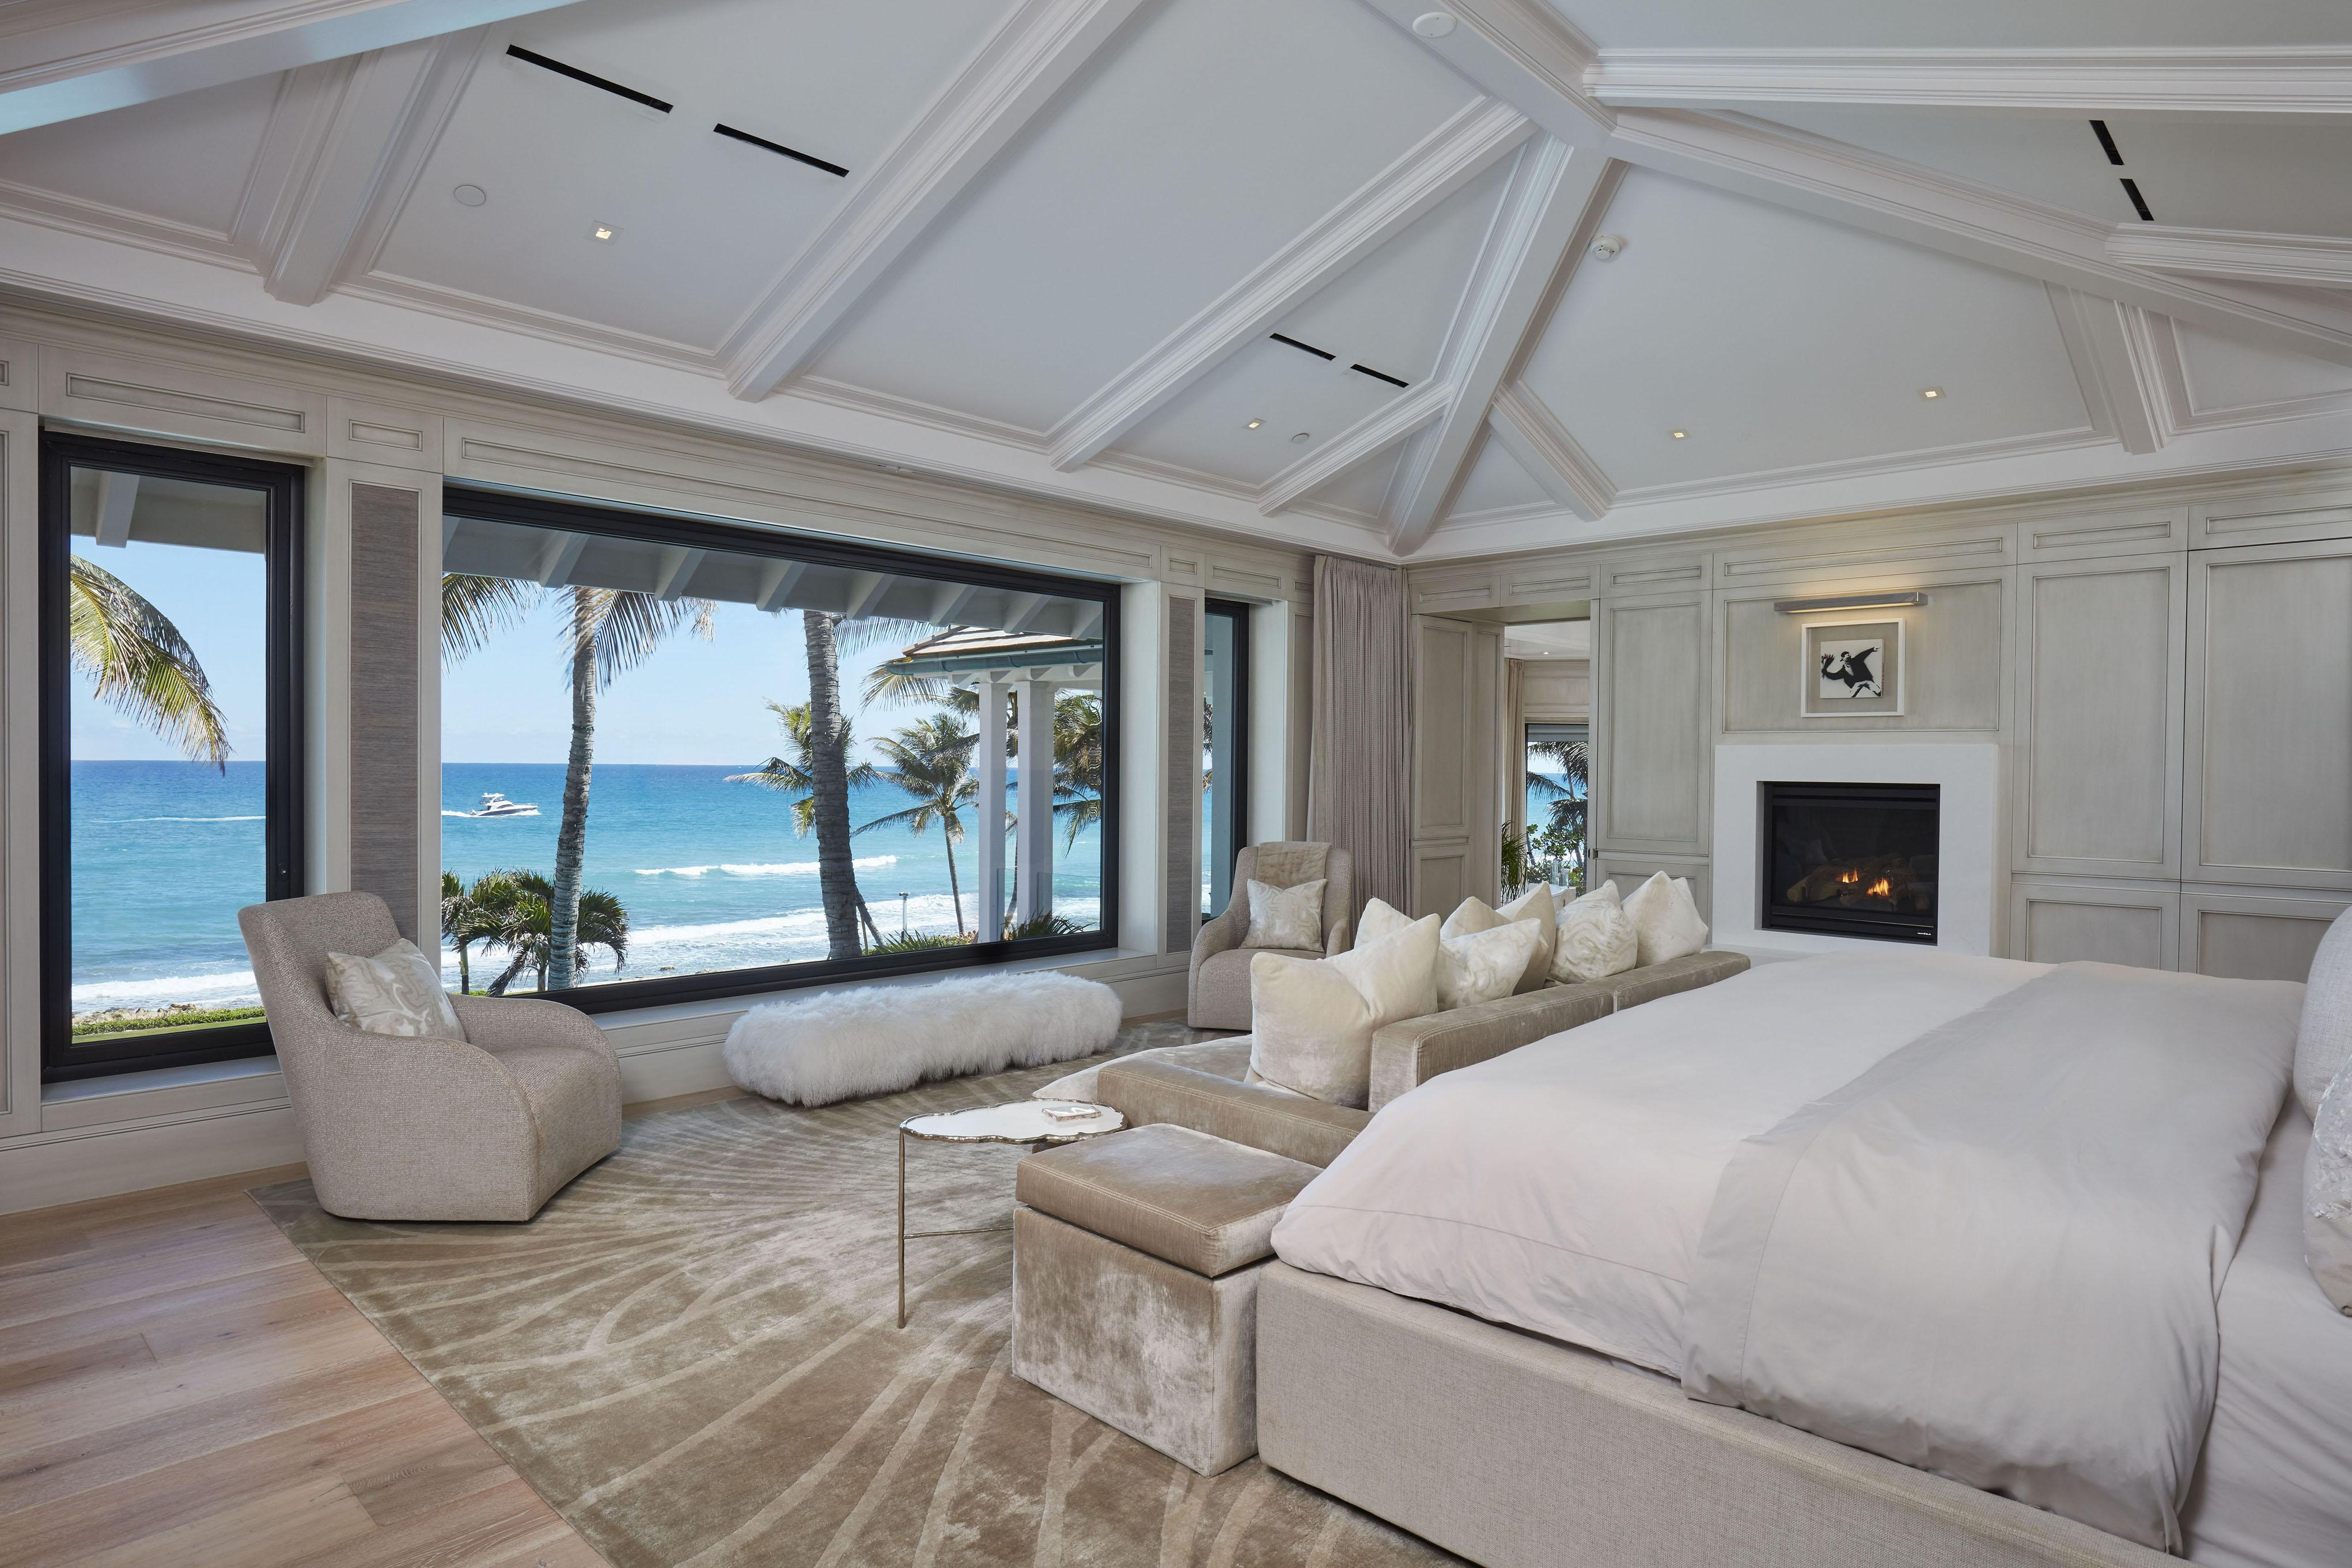 Stunning master bedroom has a view of the ocean and a built-in fireplace